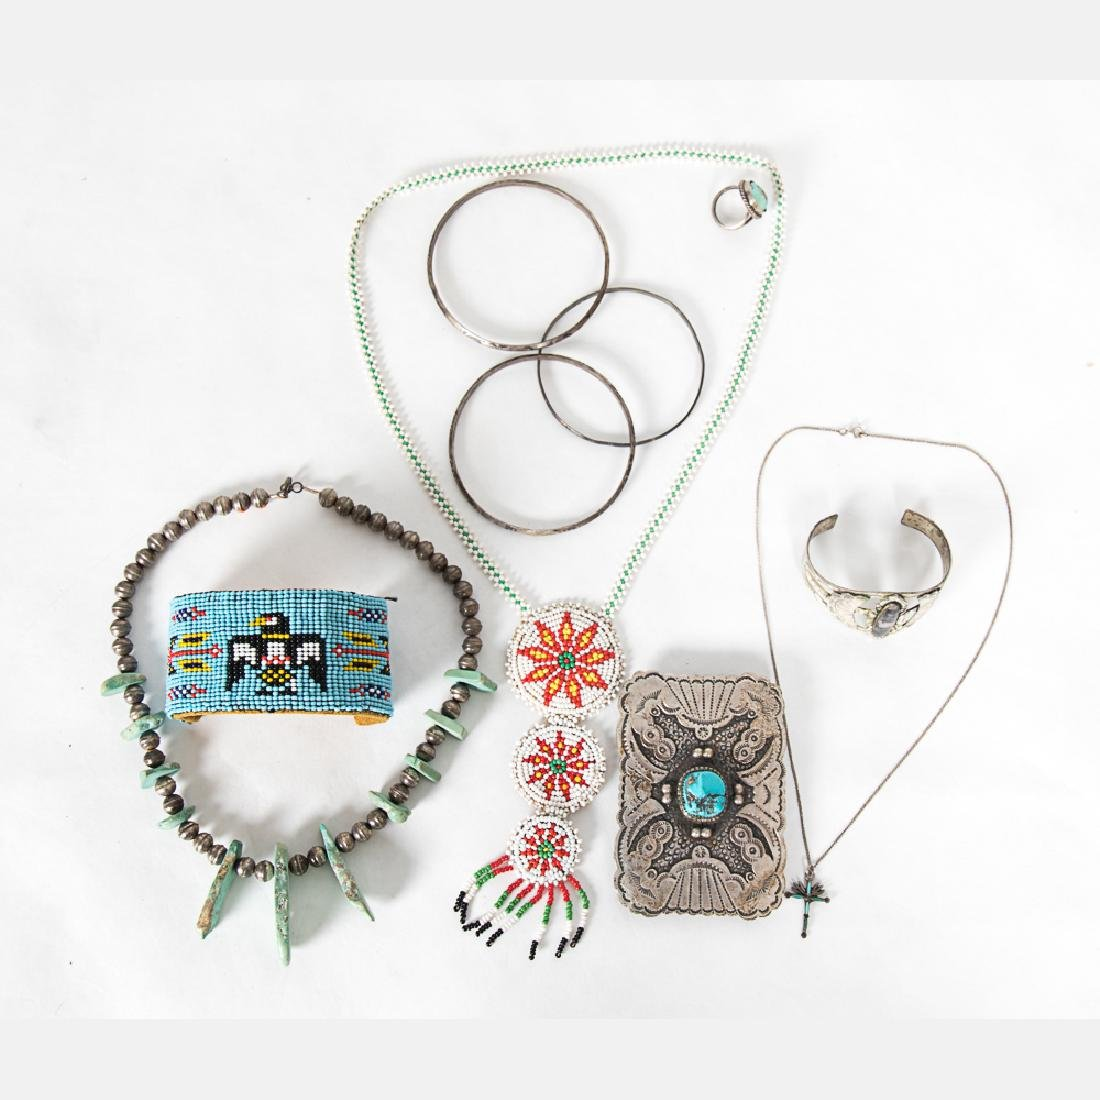 A Collection of Navajo Silver, Turquoise and Beaded